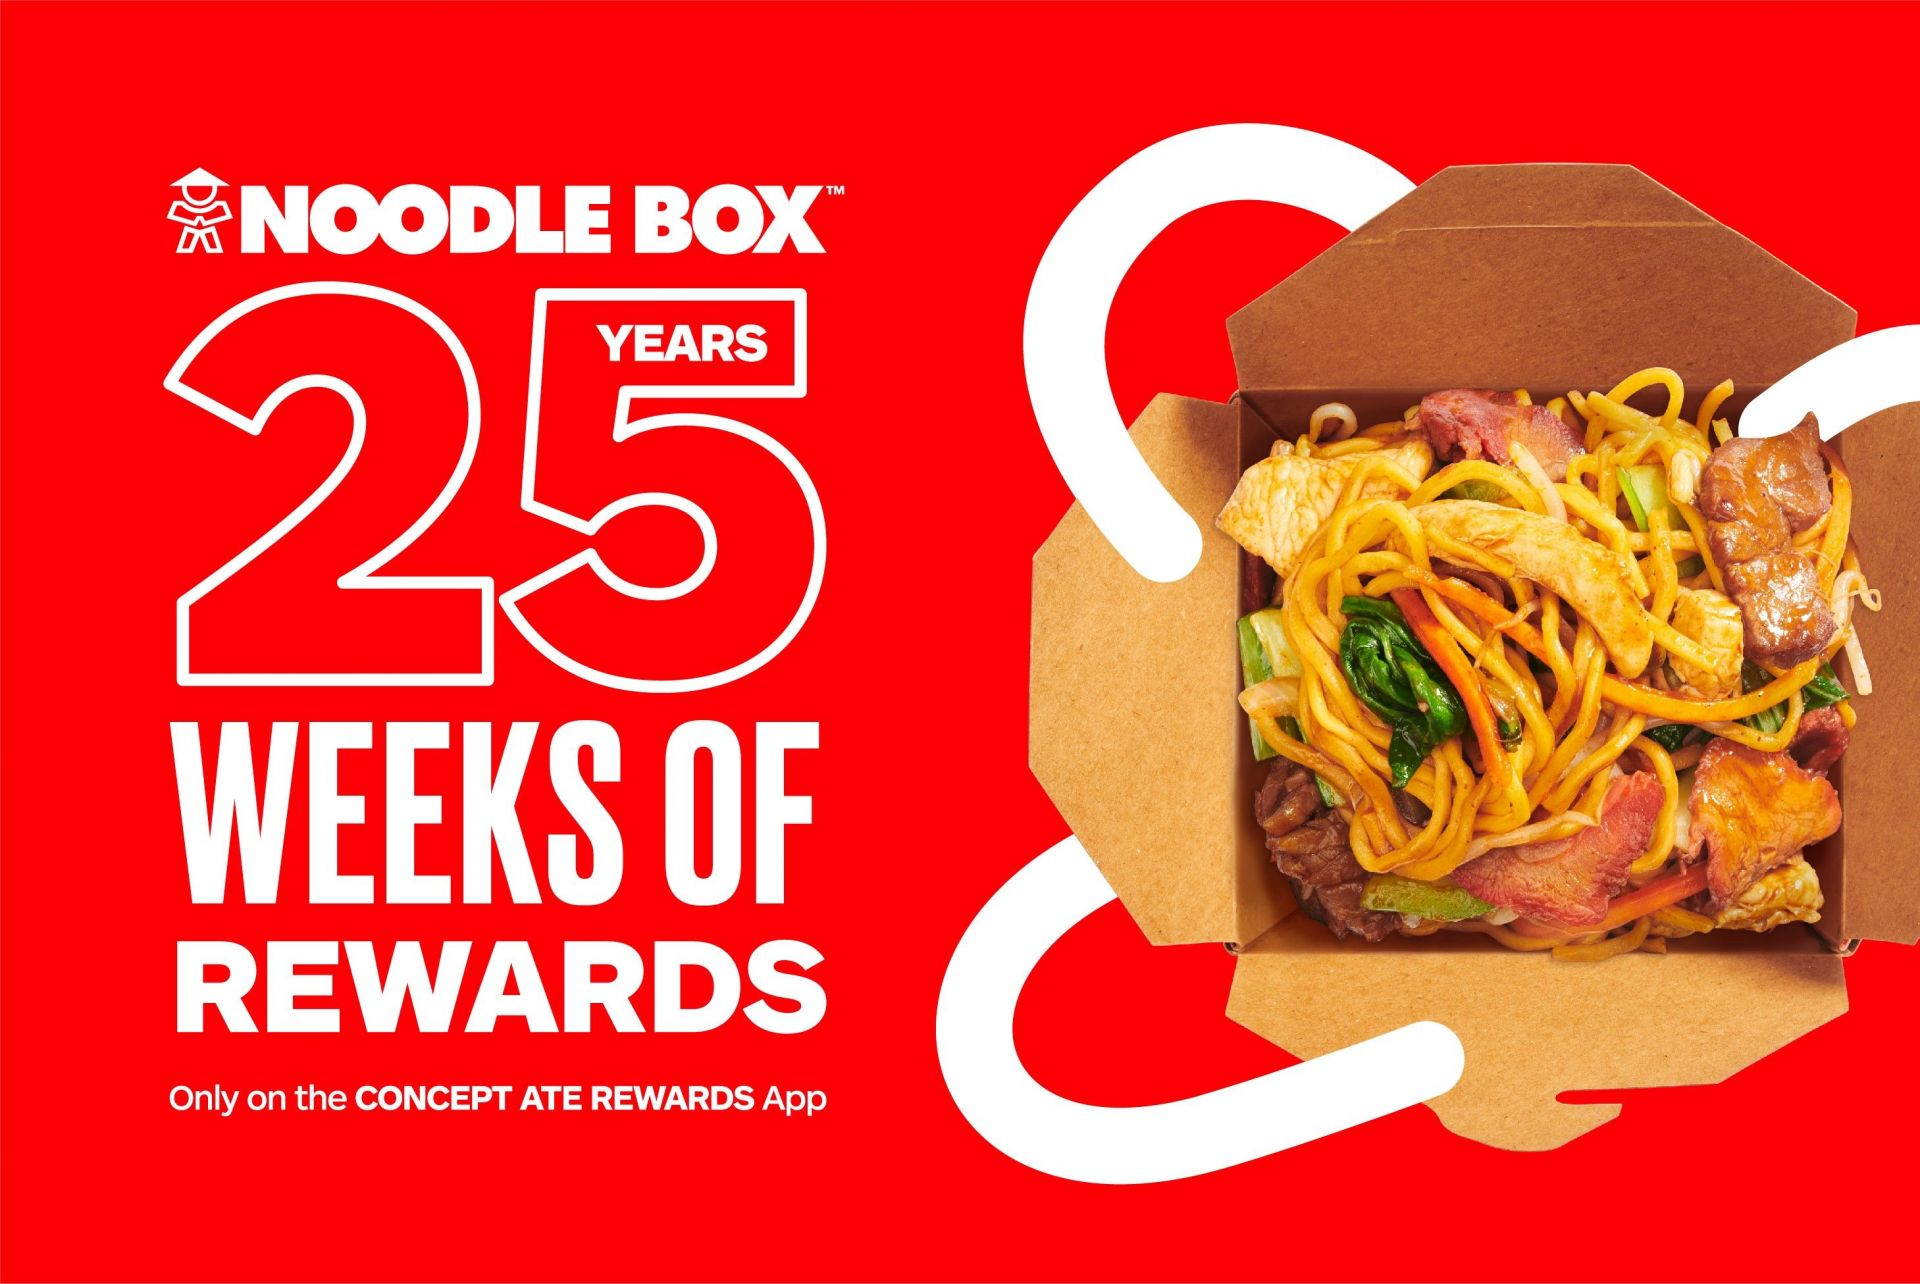 Noodle Box 25 years | Inside Franchise Business Executive